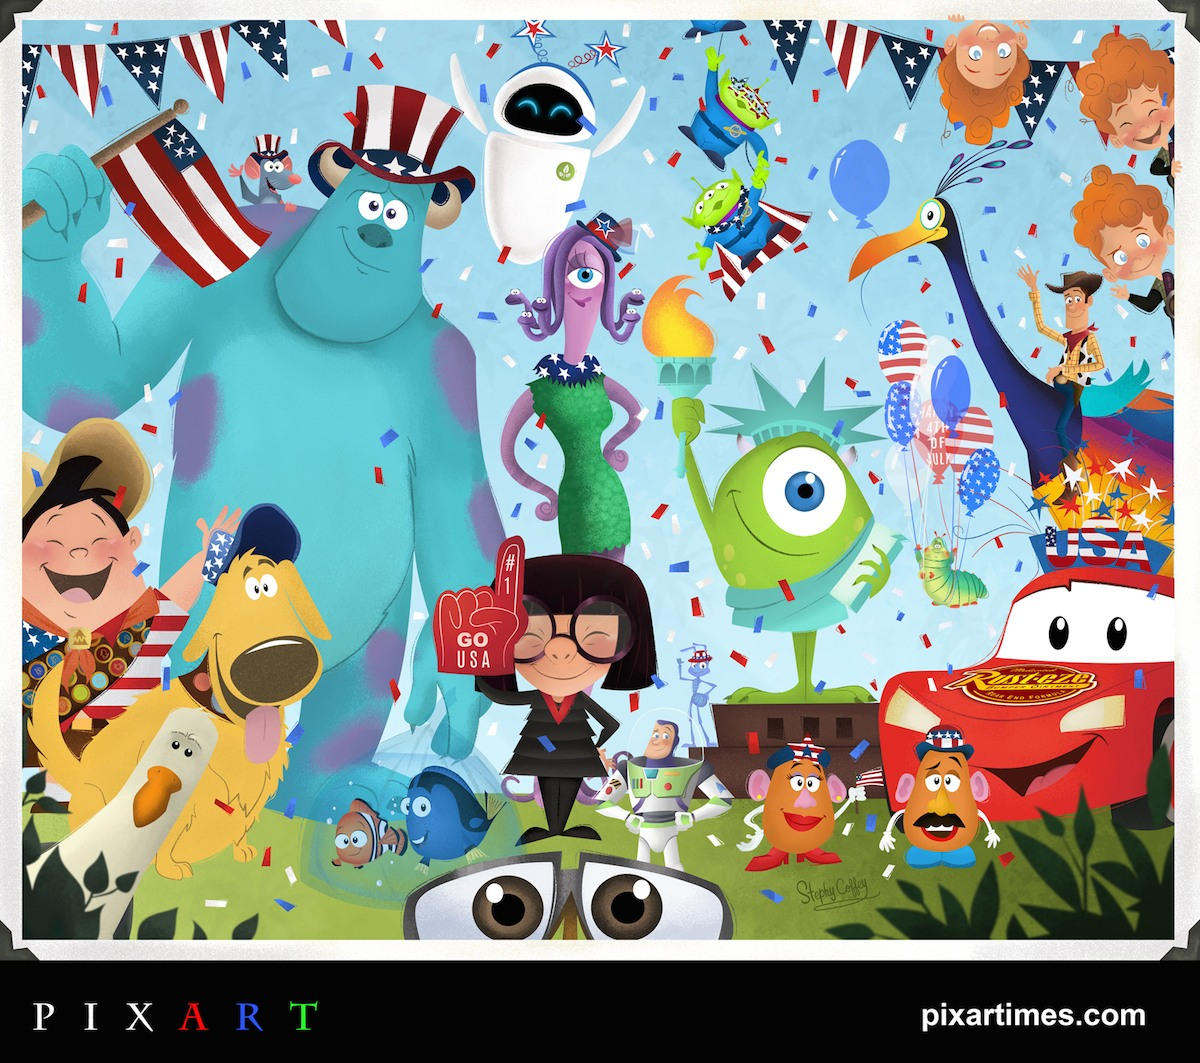 PixArt: July Feature I – Happy 4th